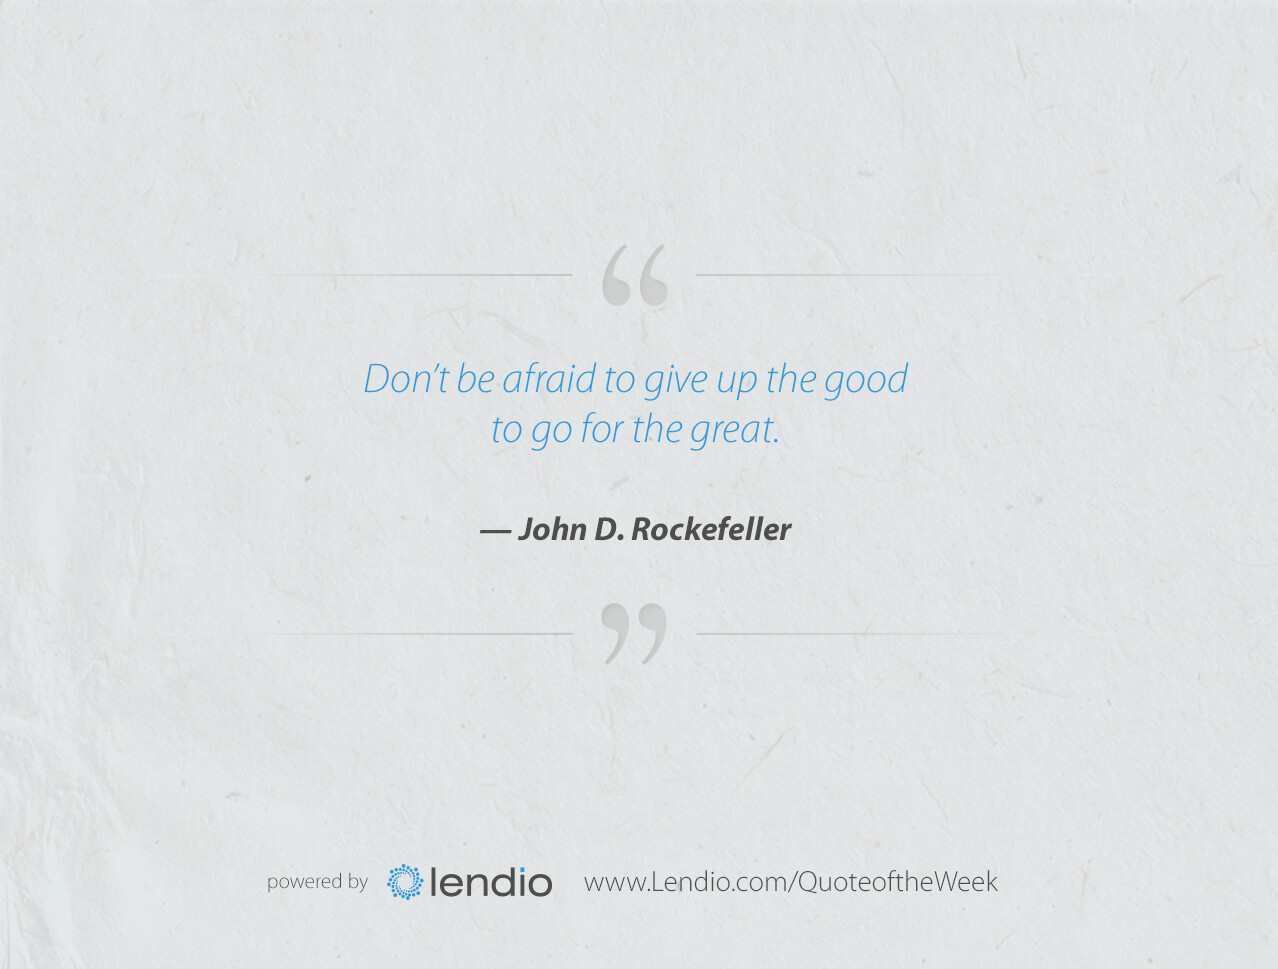 "Lendio Business quote: Give up the Good ""Don't be afraid to give up the good to go for the great."" — John D. Rockefeller"